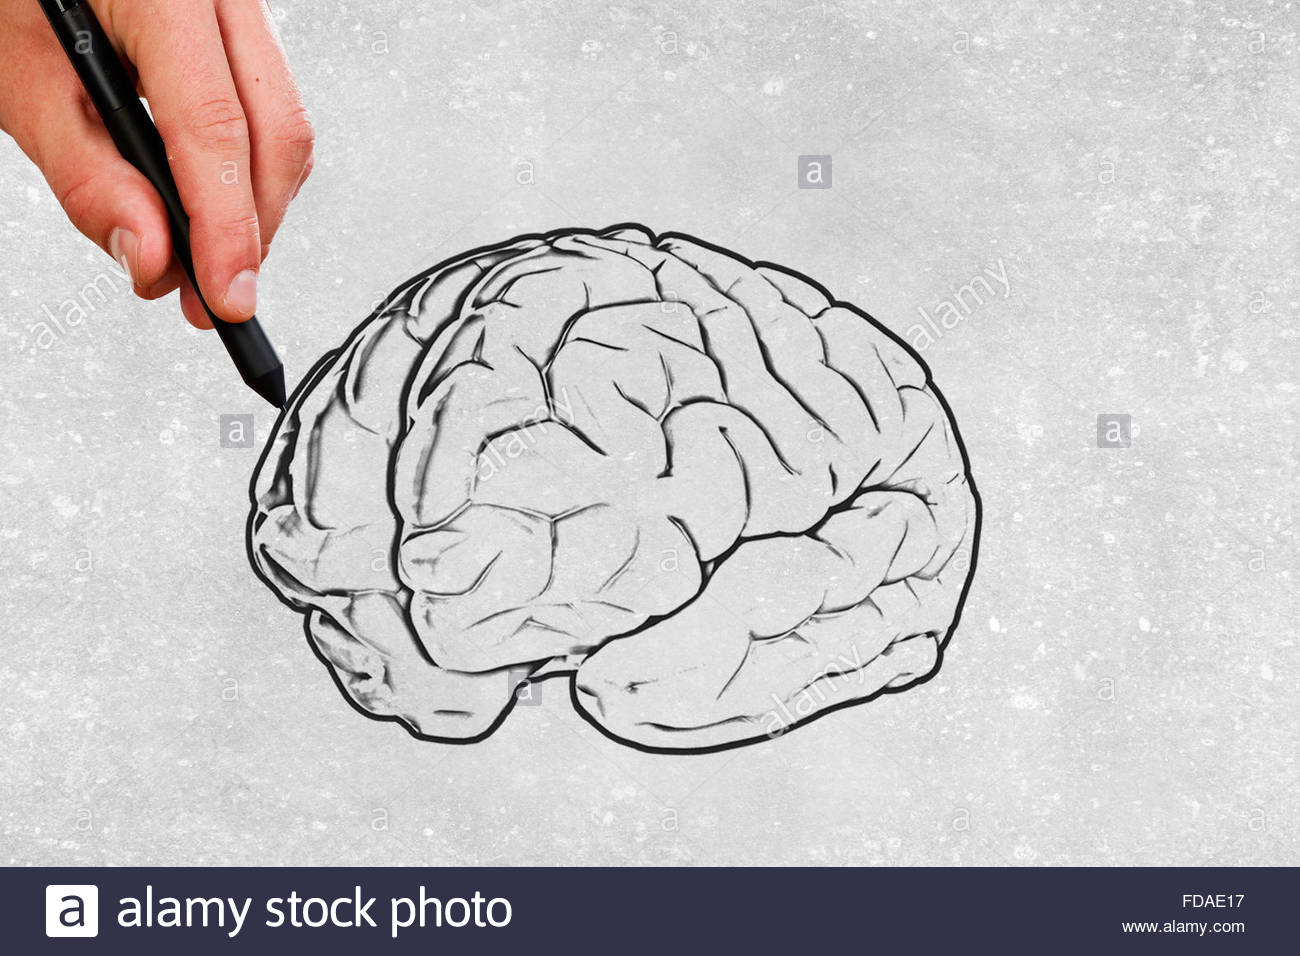 1300x956 Close Up Of Male Hand Drawing Human Brain Stock Photo 94272899